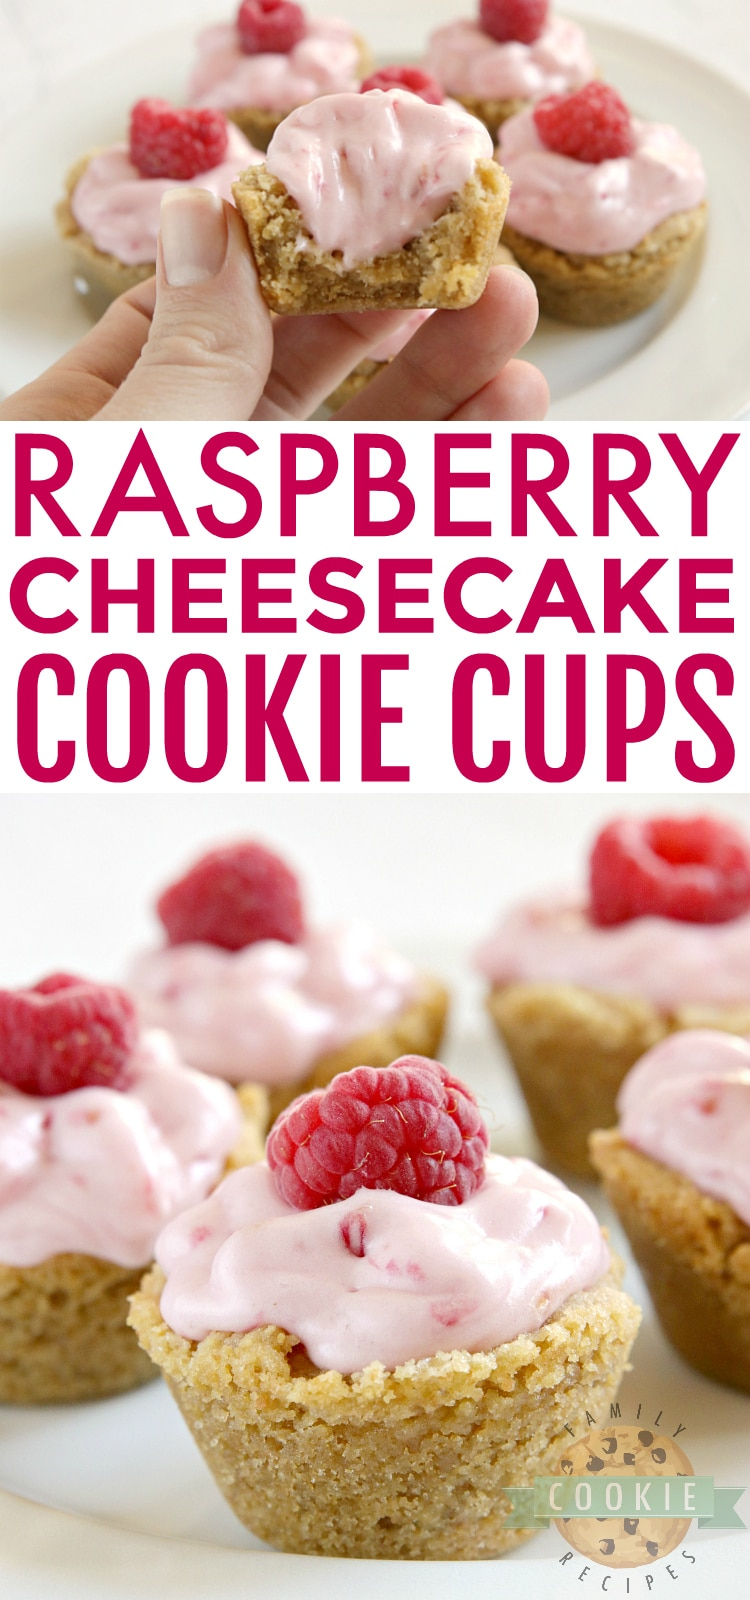 Raspberry Cheesecake Cookie Cups have a raspberry cheesecake filling in a bite-sized graham cracker cookie crust. These delicious cookie cups taste just like raspberry cheesecake and only take a few minutes to make!